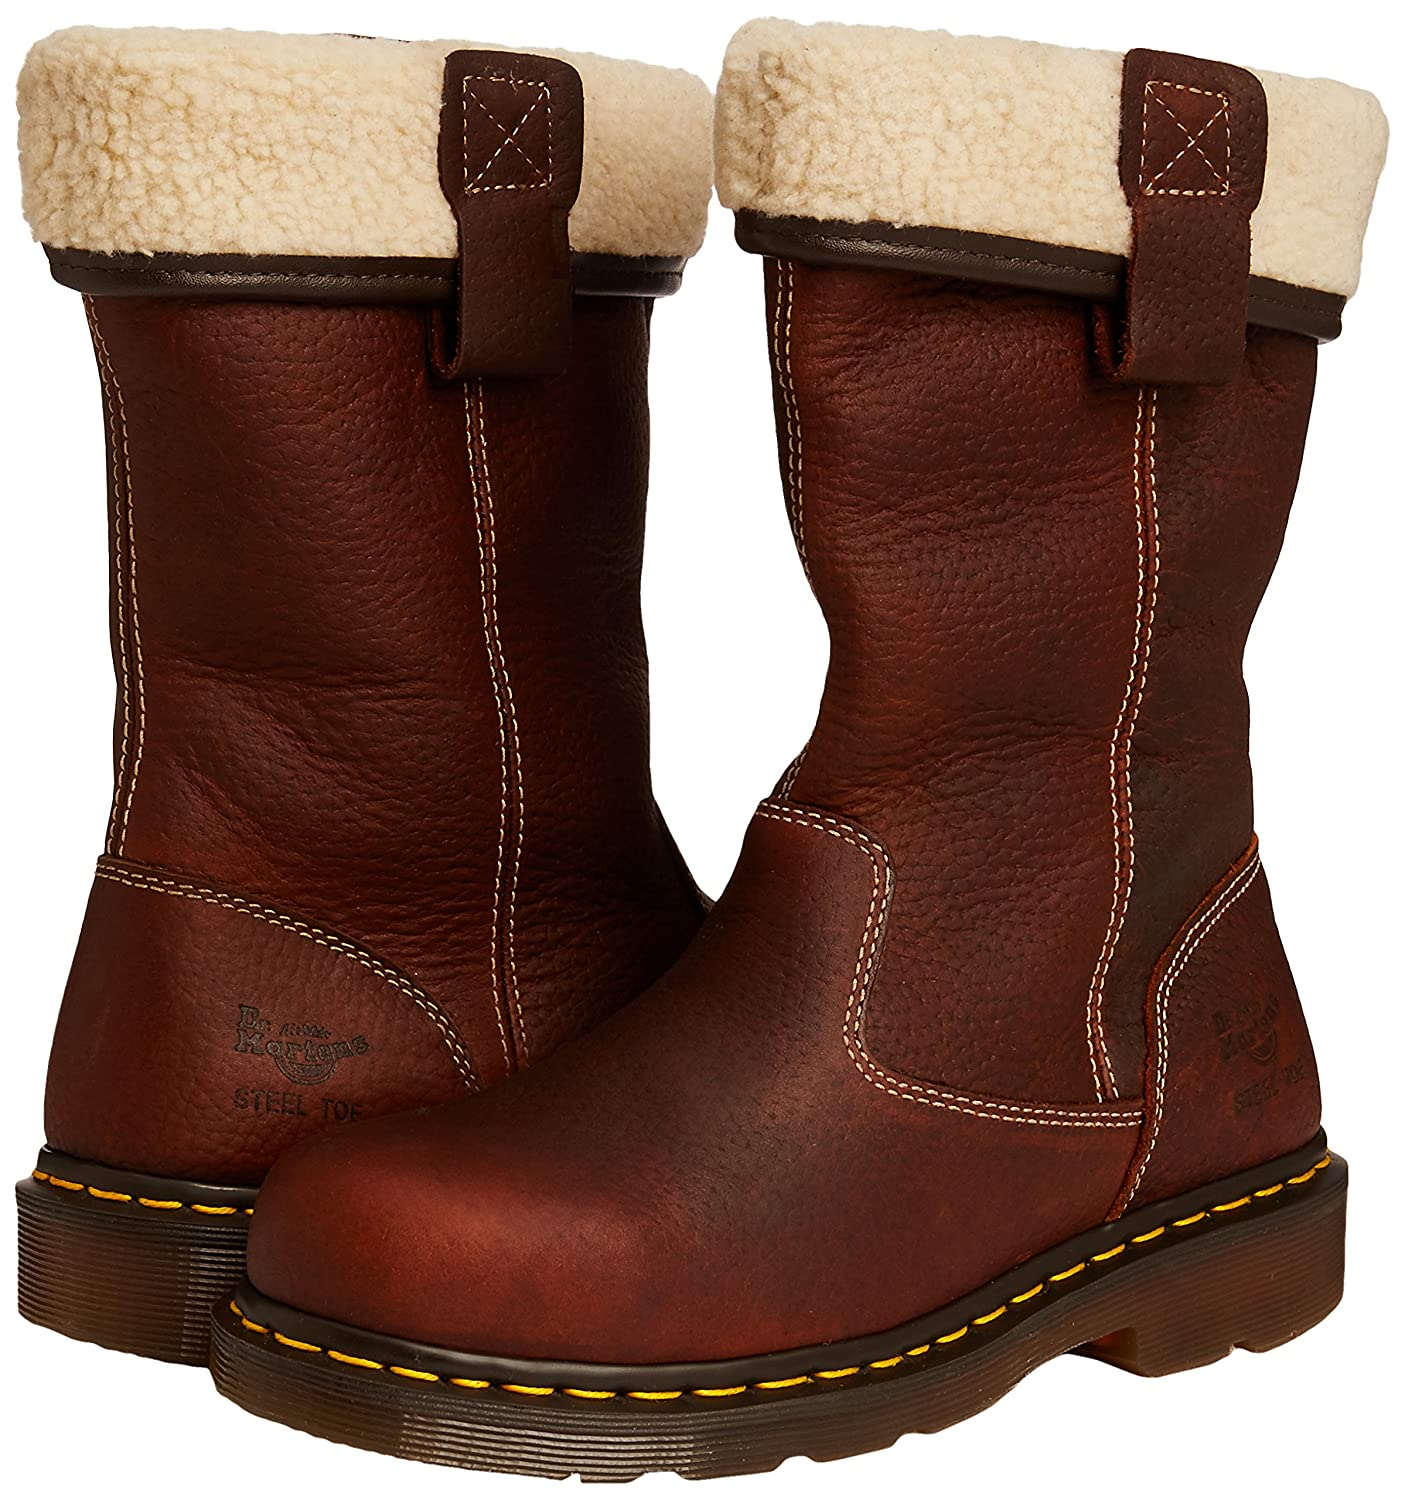 Rosa DrMartens Rosa stBottes stBottes FemmeMarro Rosa FemmeMarro DrMartens DrMartens qUVGSpzM